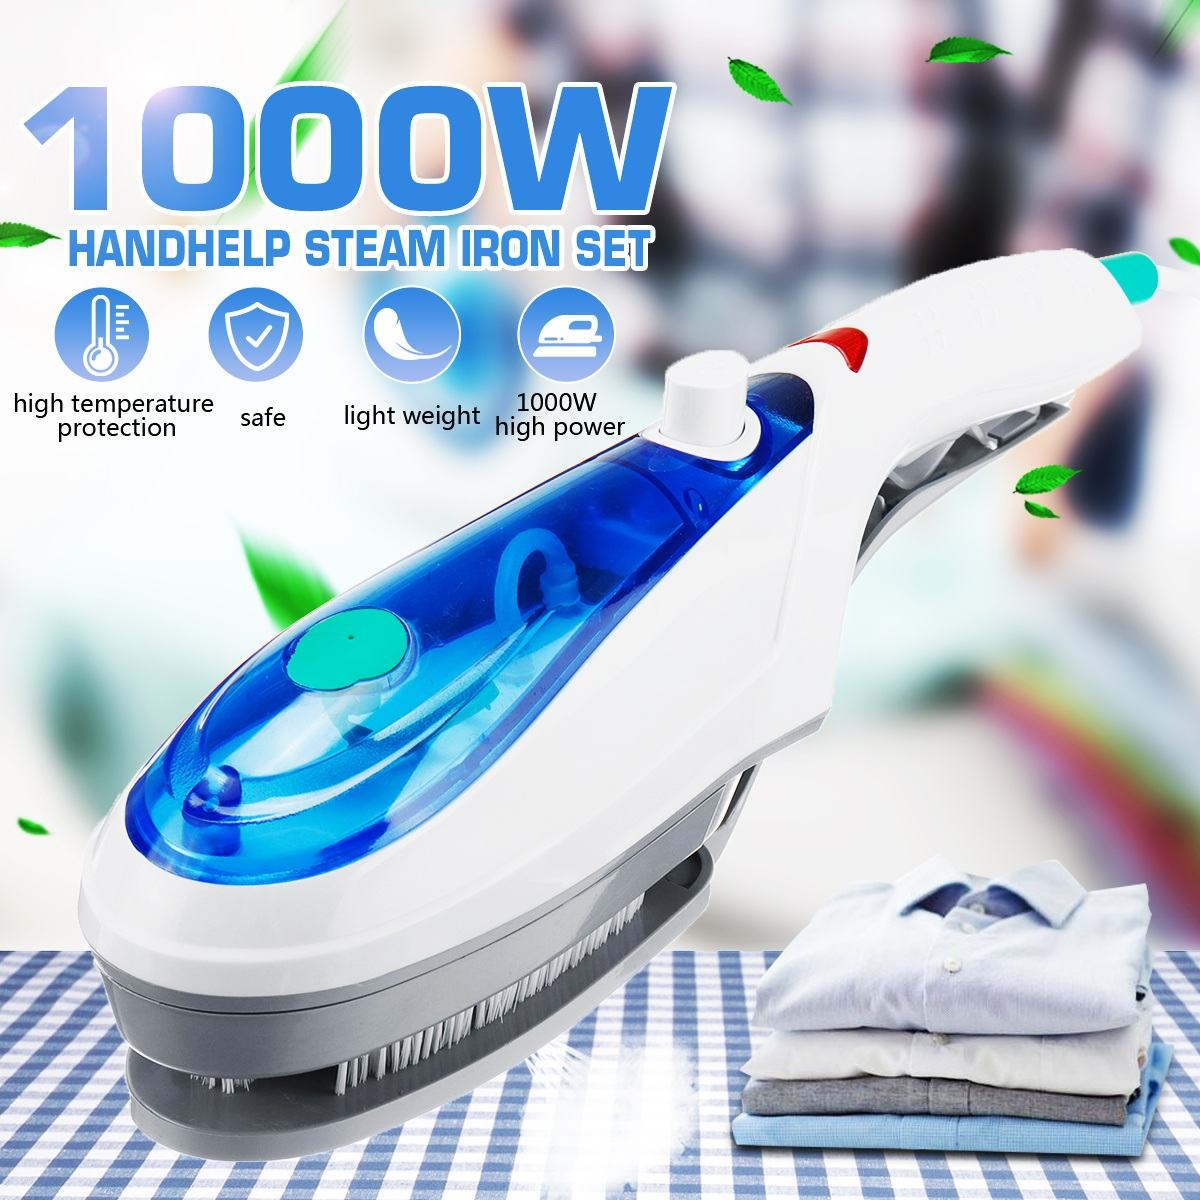 1000W Handheld Garment Steamer Brush Portable Steam Iron For Clothes Generator Ironing Steamer EU/US/AU plug 110V-240V